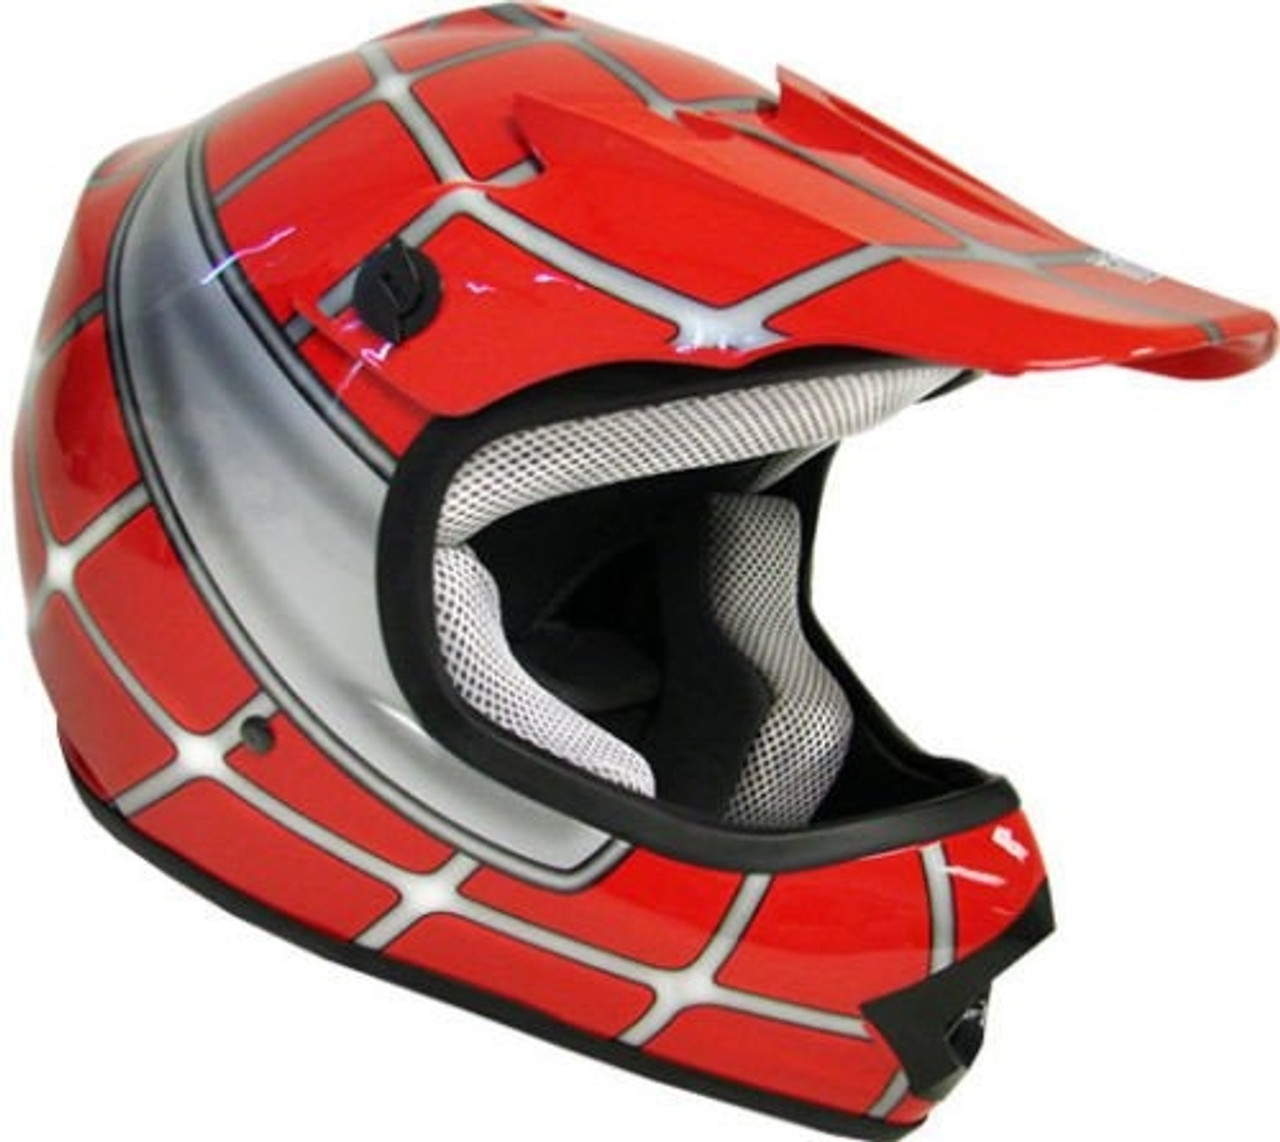 AMZ MOTOCROSS HELMETS FOR KIDS DIRT-BIKE ATVS SCOOTER